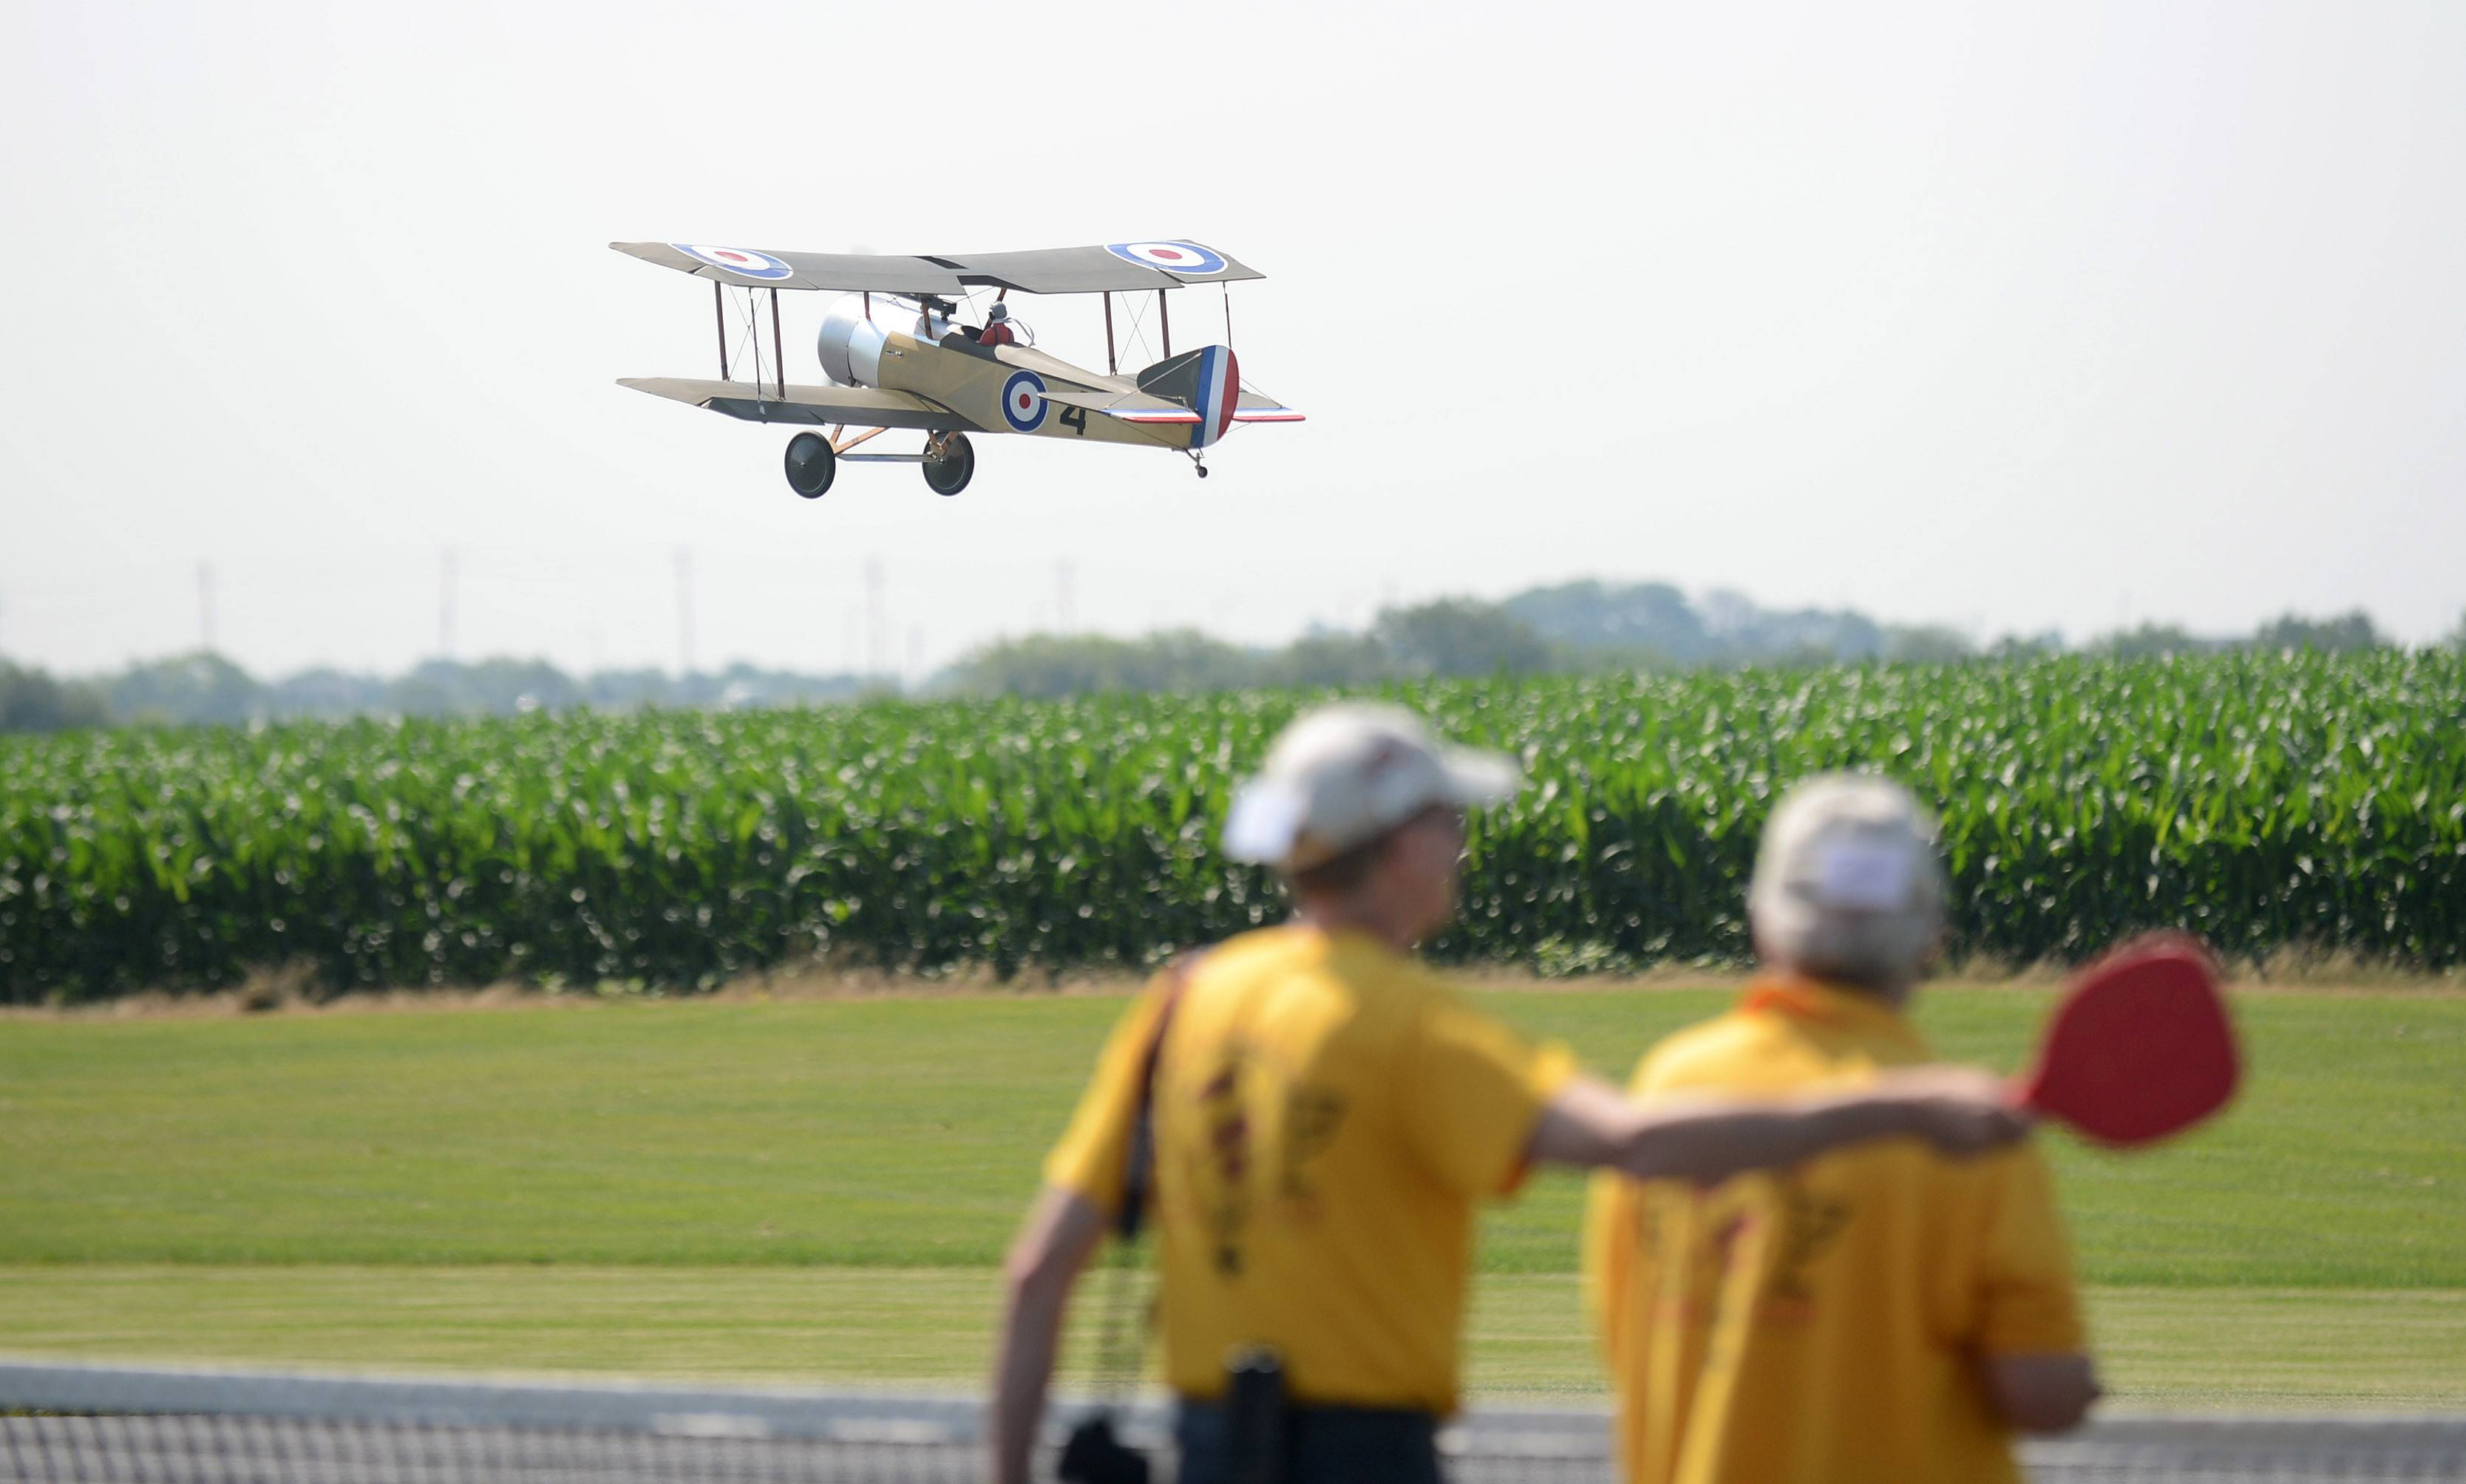 A biplane makes a showing pass near the runway as another pilot and spotter signal a request to land during the Fox Valley Aero Club's Windy City Warbird and Classics model airplane show.